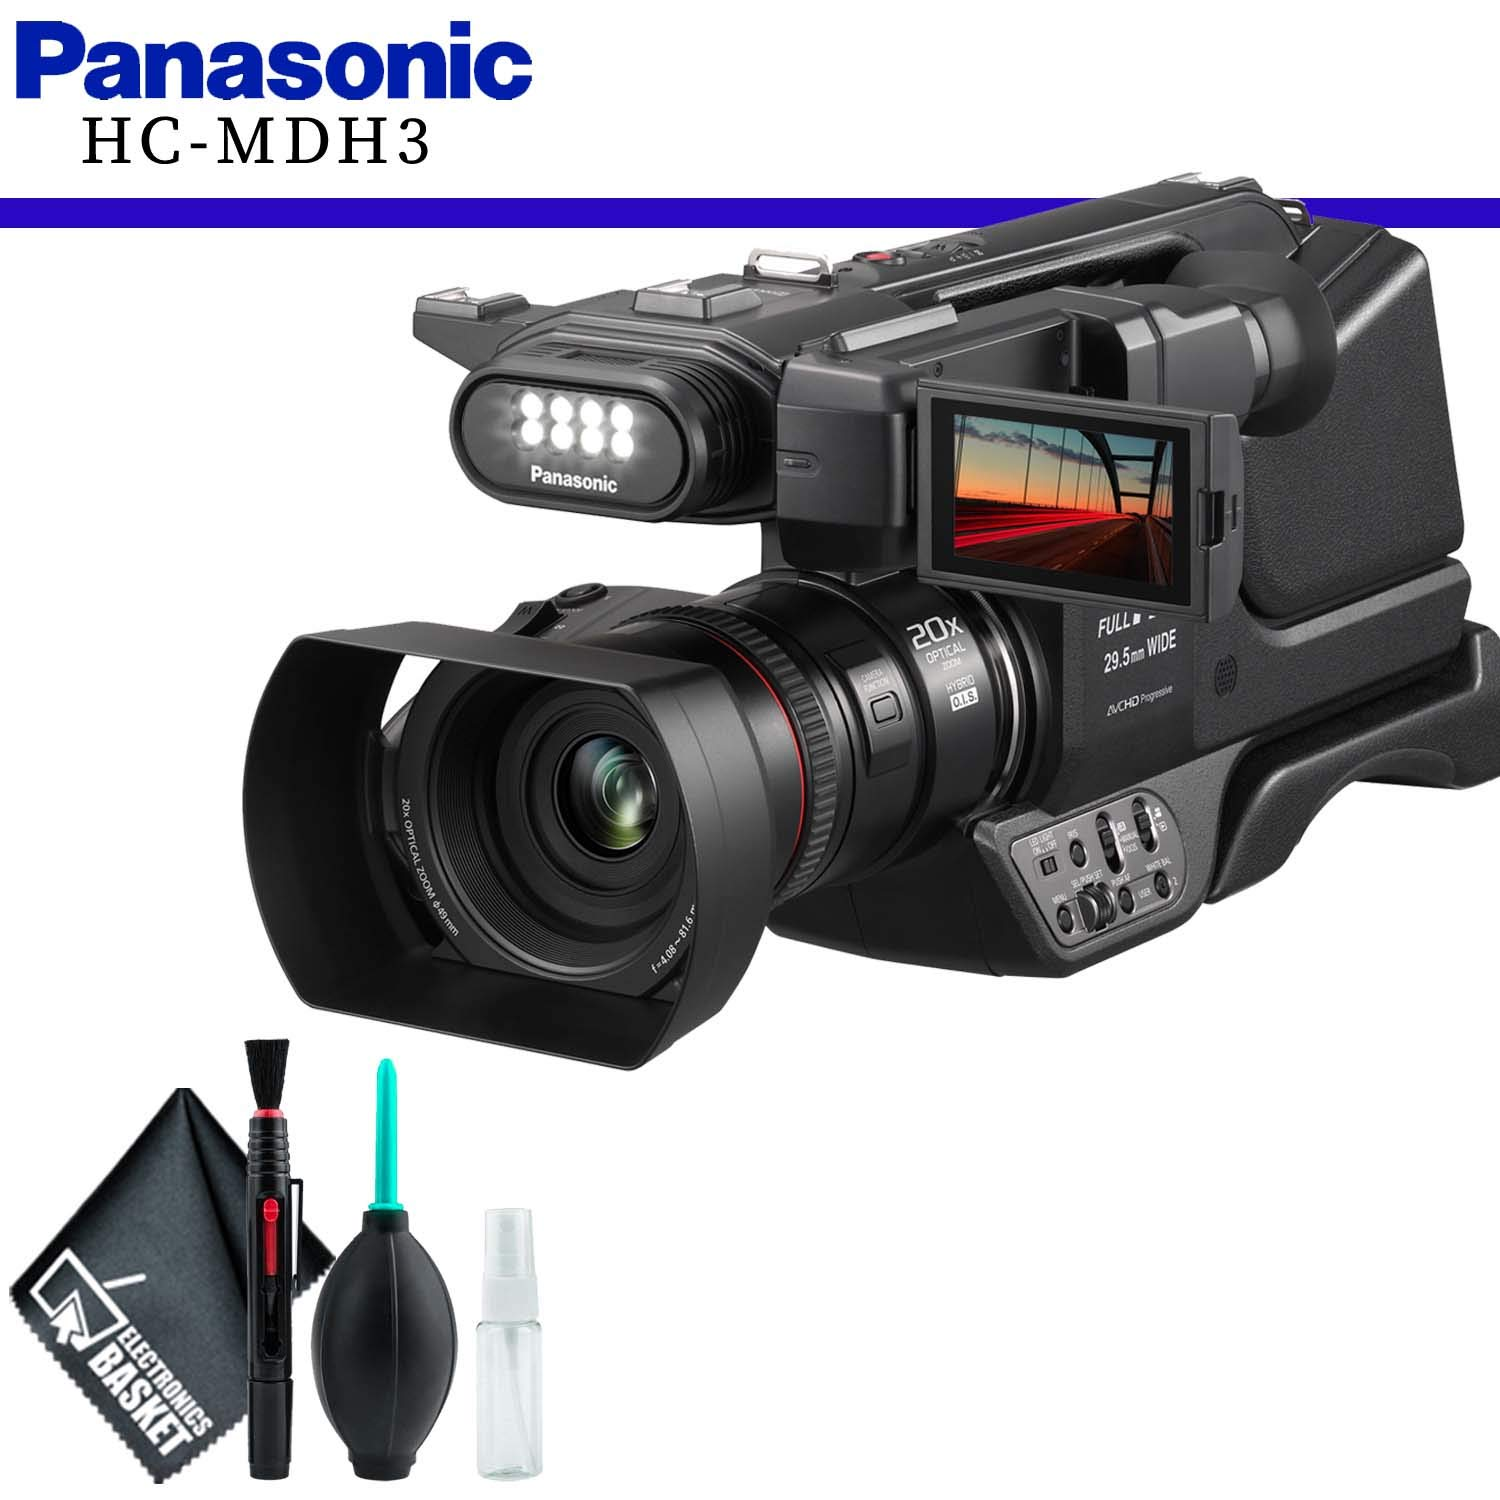 Panasonic HC-MDH3 AVCHD (PAL) Shoulder Mount Camcorder with LCD Touchscreen & LED Light and Cleaning Kit by Panasonic